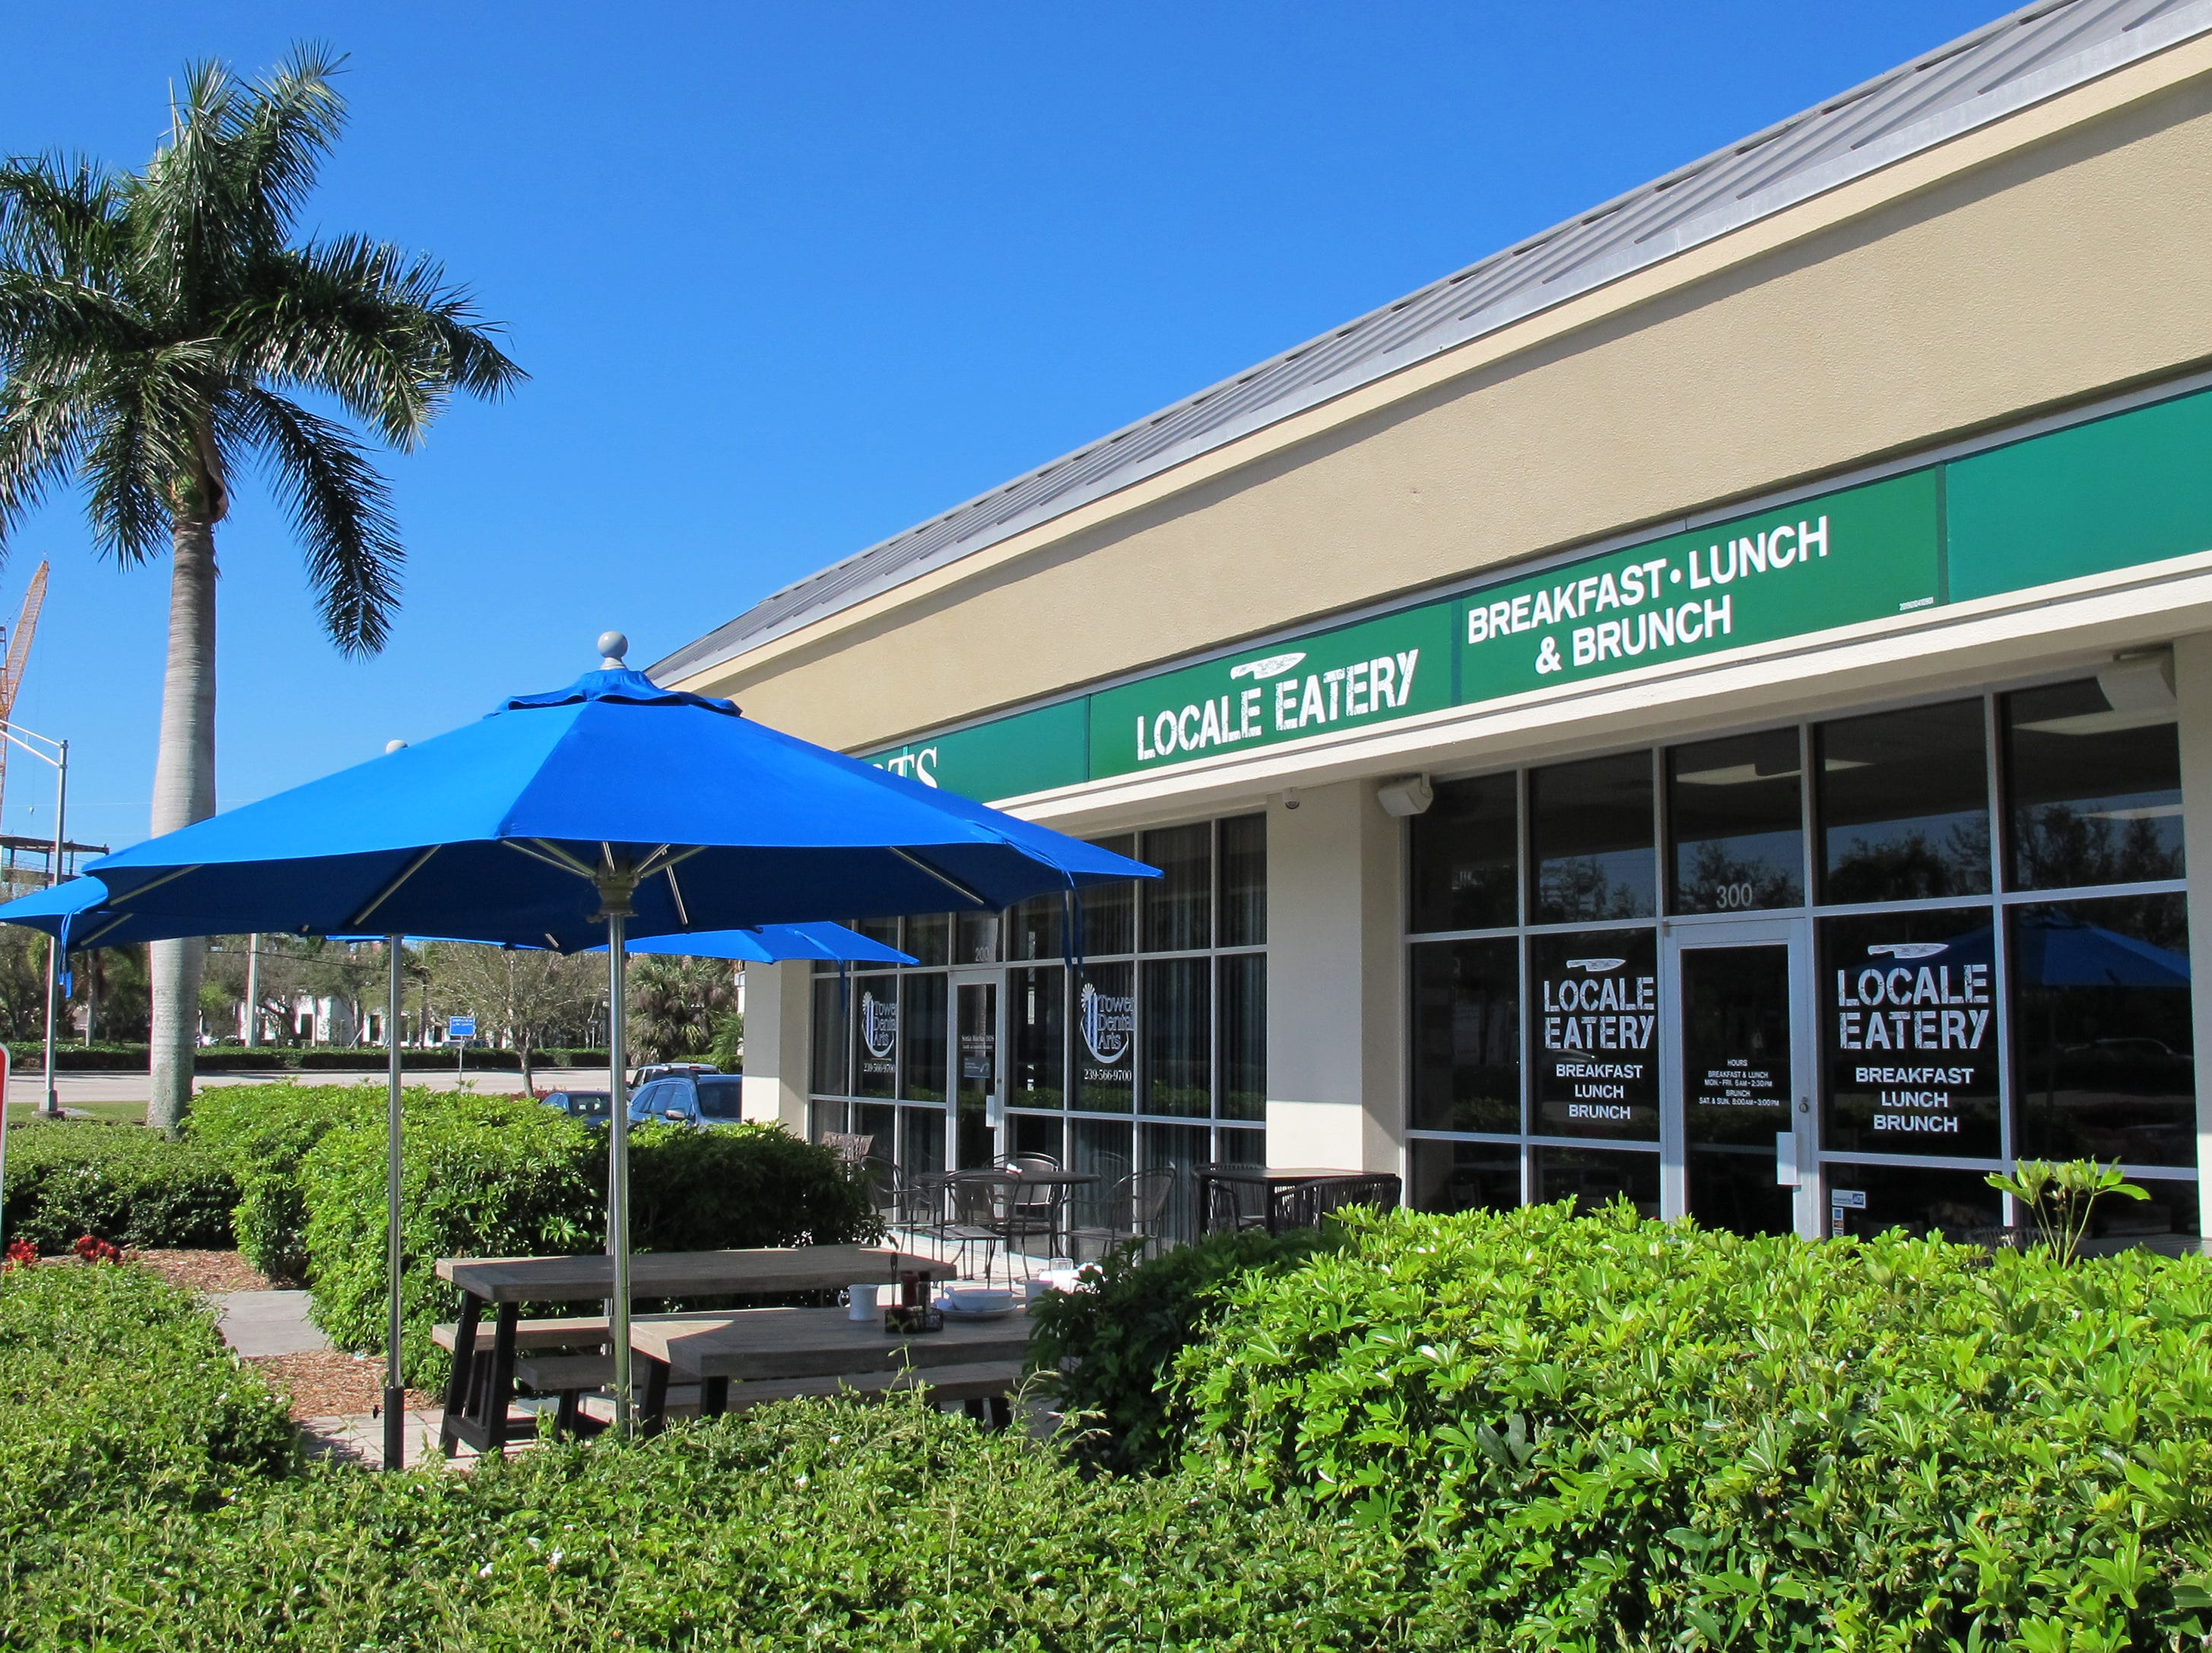 Locale Eatery opened in March 2019 in the former space of Sweet Caroline's near NCH North Naples Hospital campus where Goodlette-Frank Road ends at Immokalee Road.